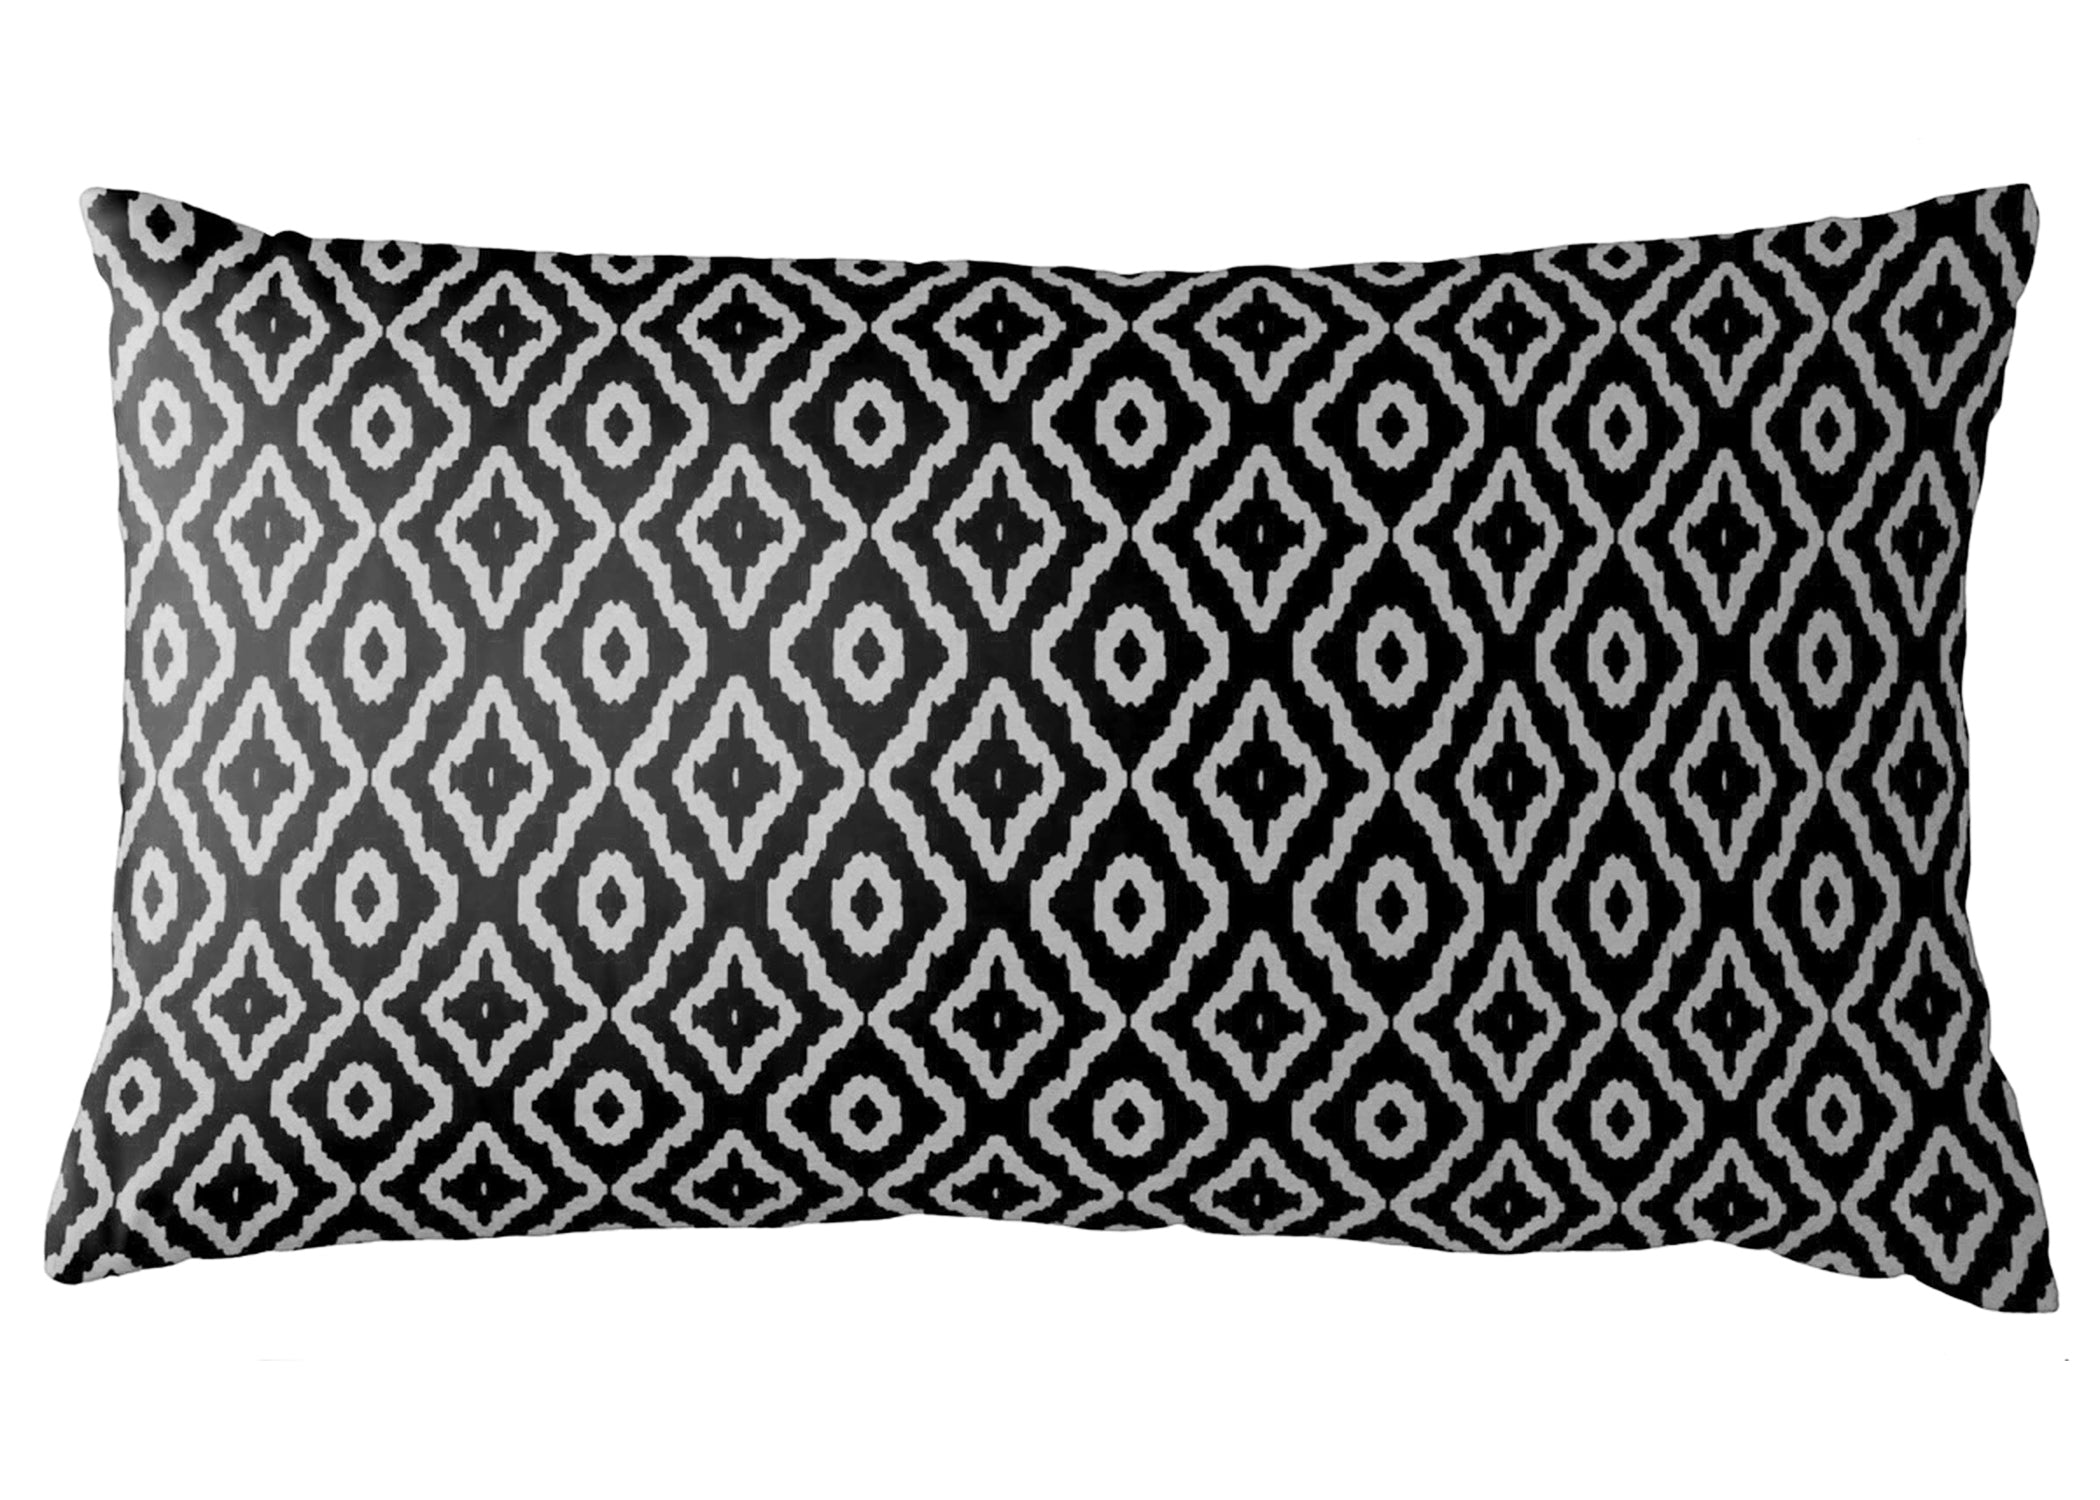 AphroChic - Haze Petite Lumbar Pillow in Black & White